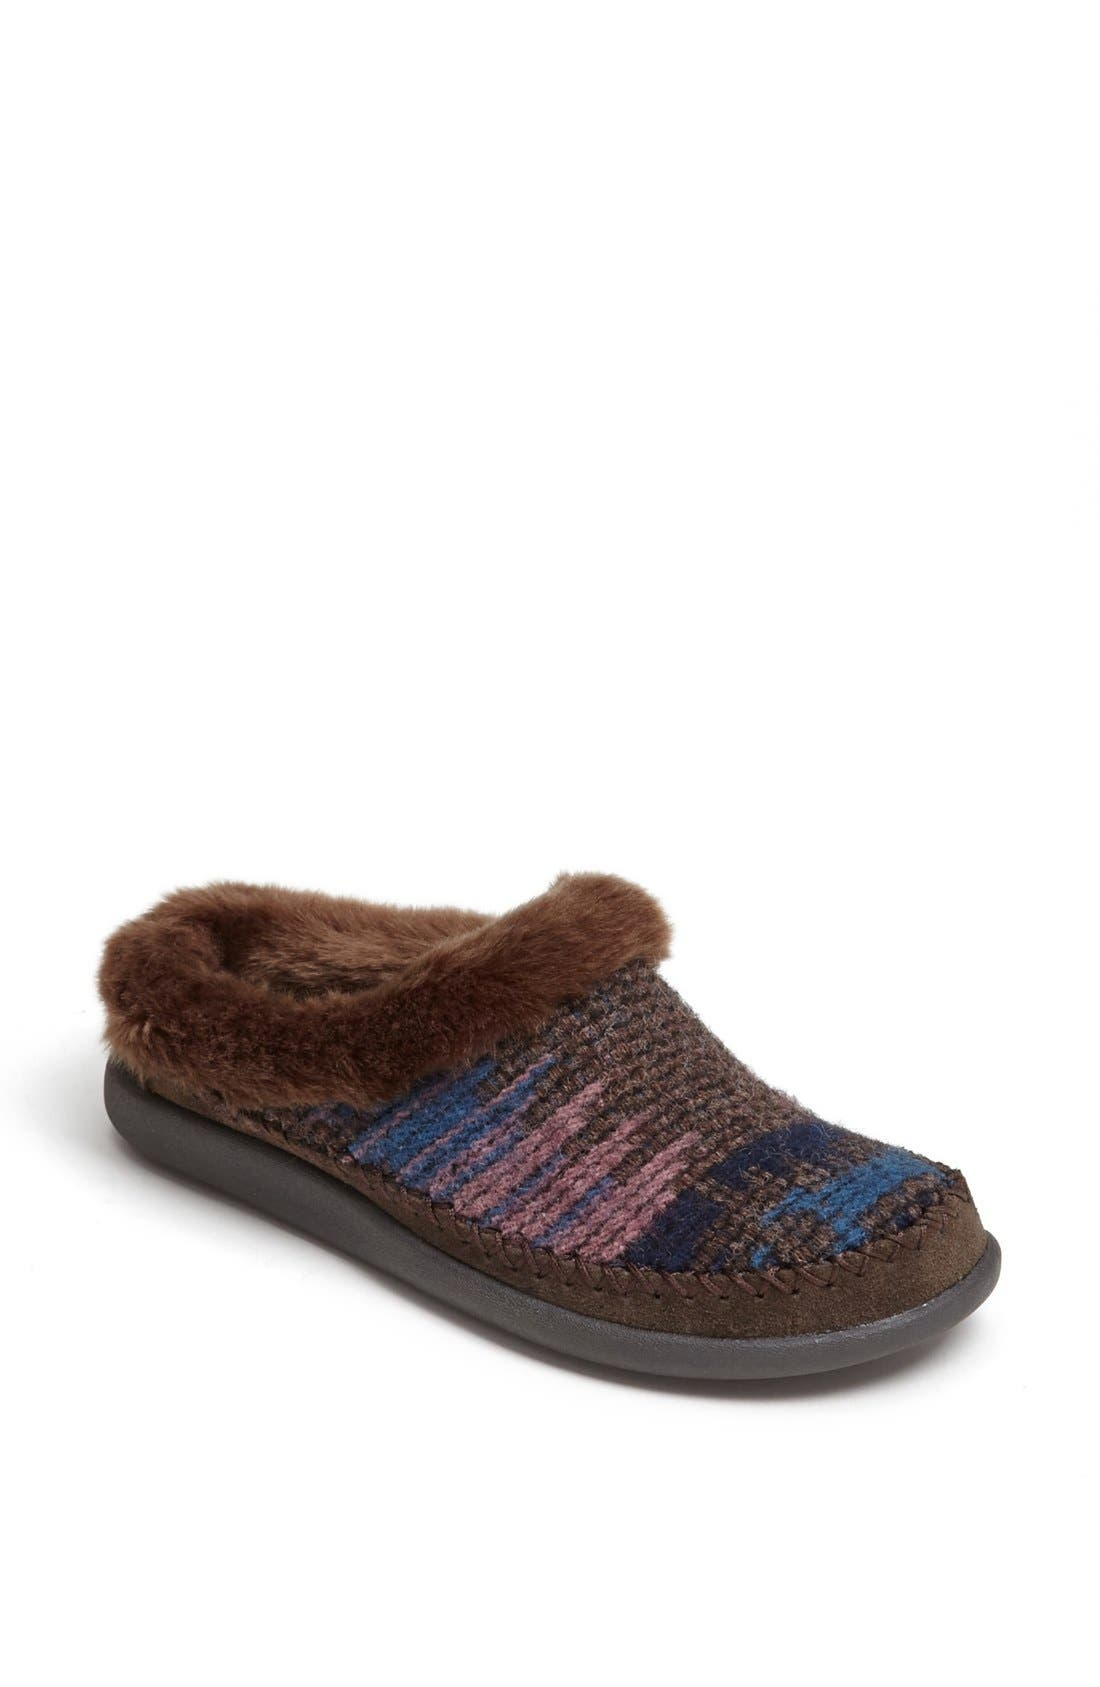 Main Image - Woolrich 'Dove Creek' Slipper (Women)